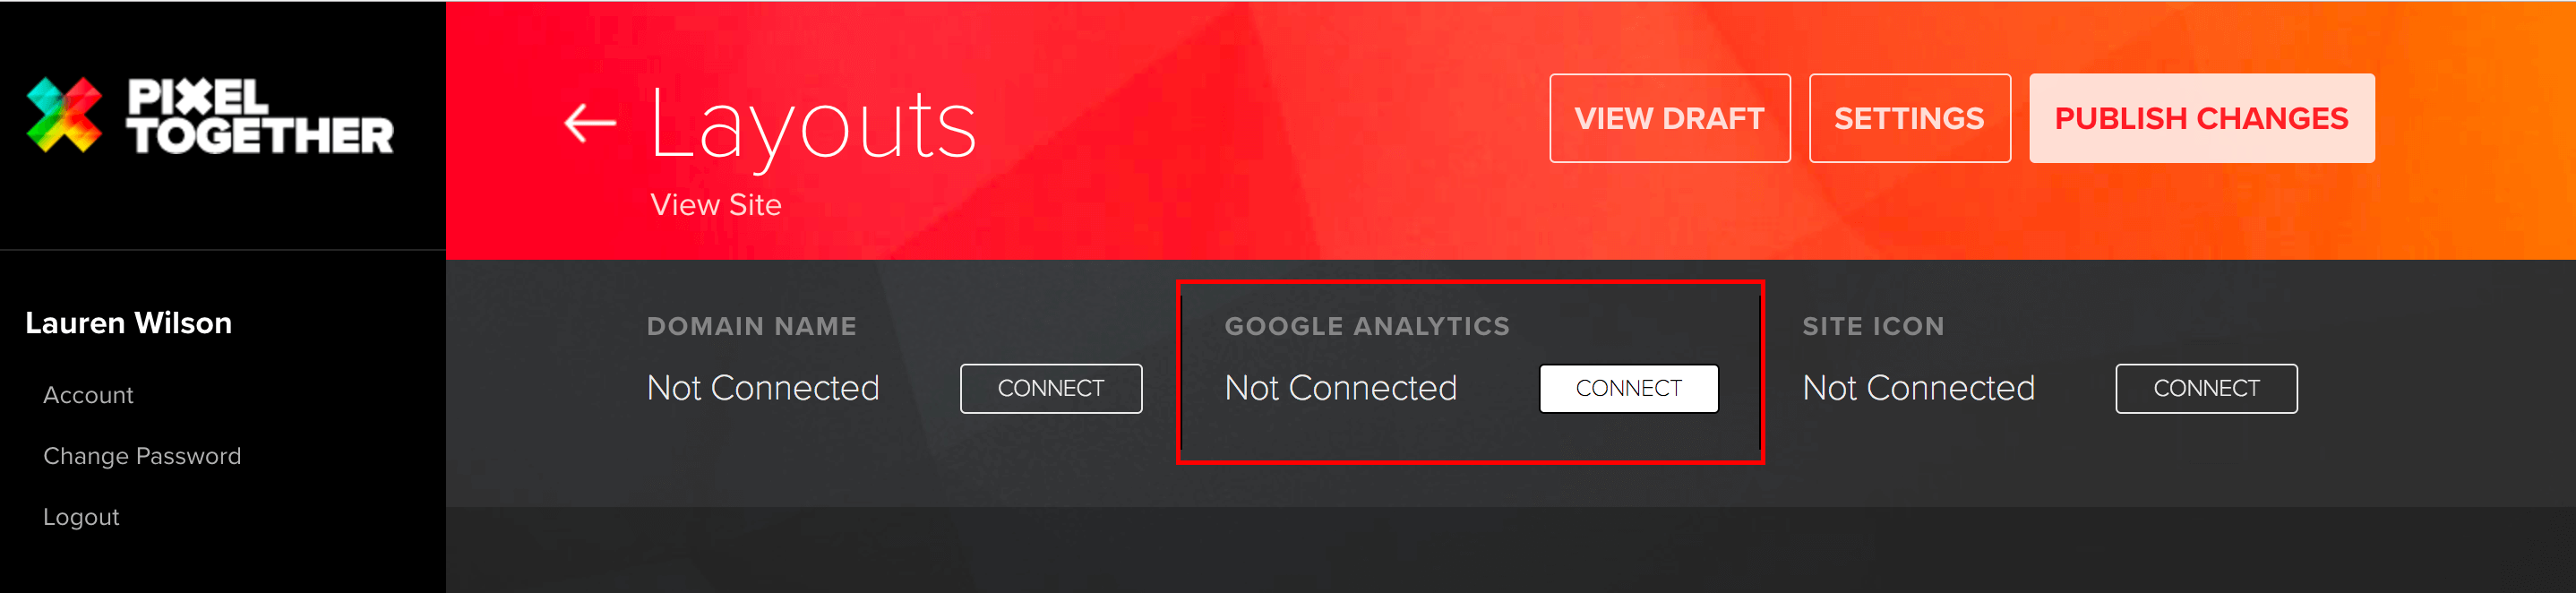 Google_analytics_3.png